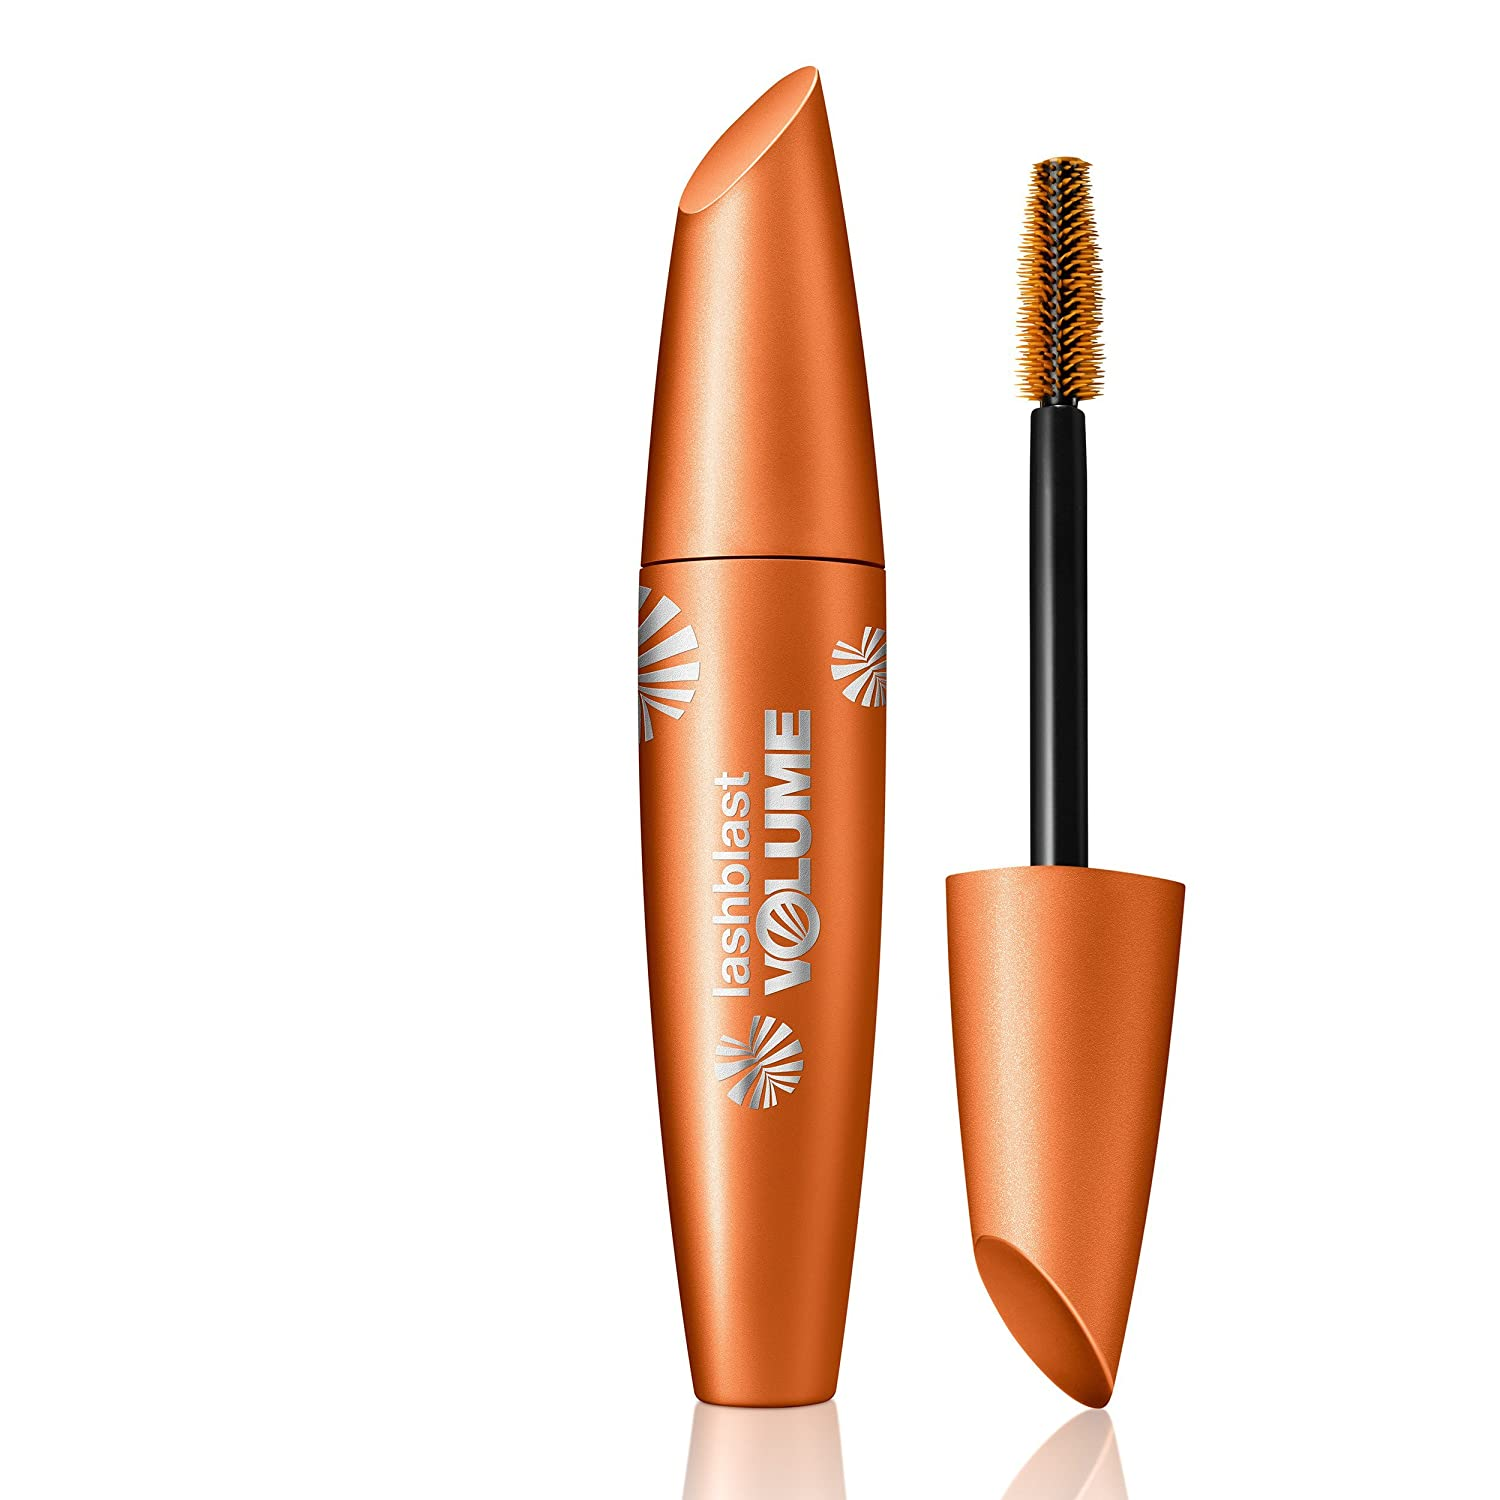 Top 10 Best Smudge Proof Mascaras For Women 2016 2017 On Flipboard